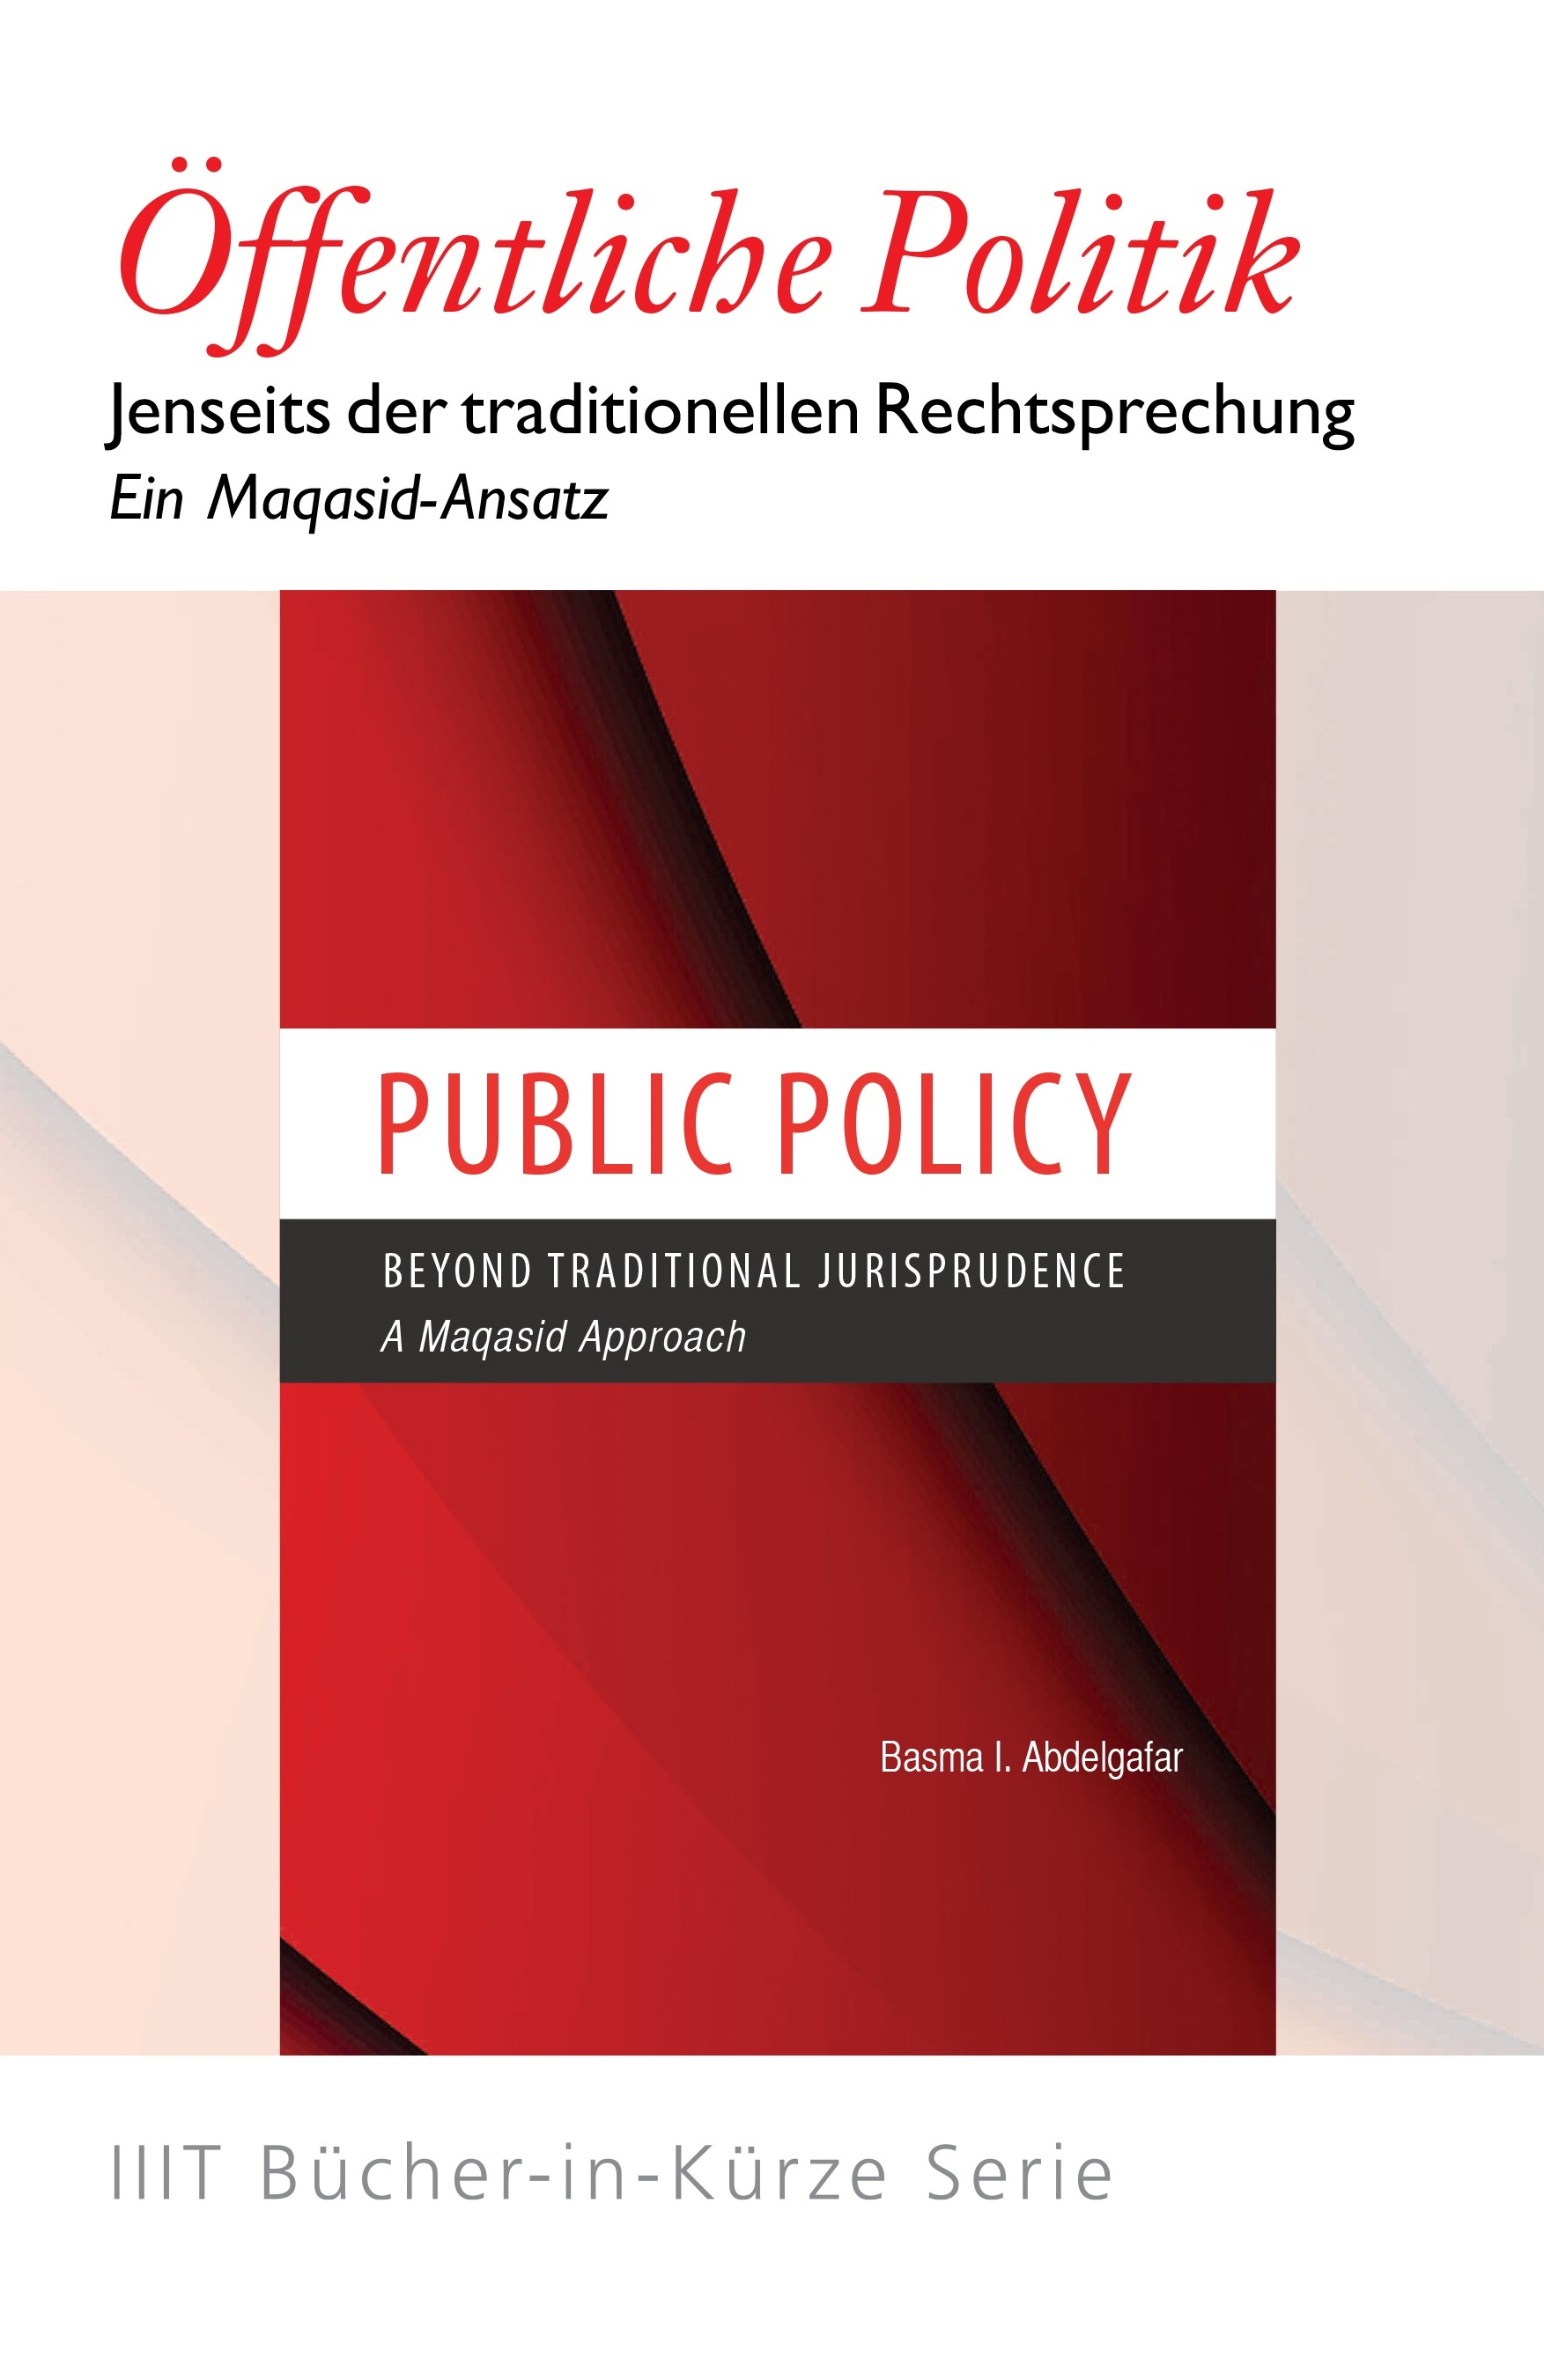 Public Policy Beyond Traditional Jurisprudence – German (Books-in-Brief)